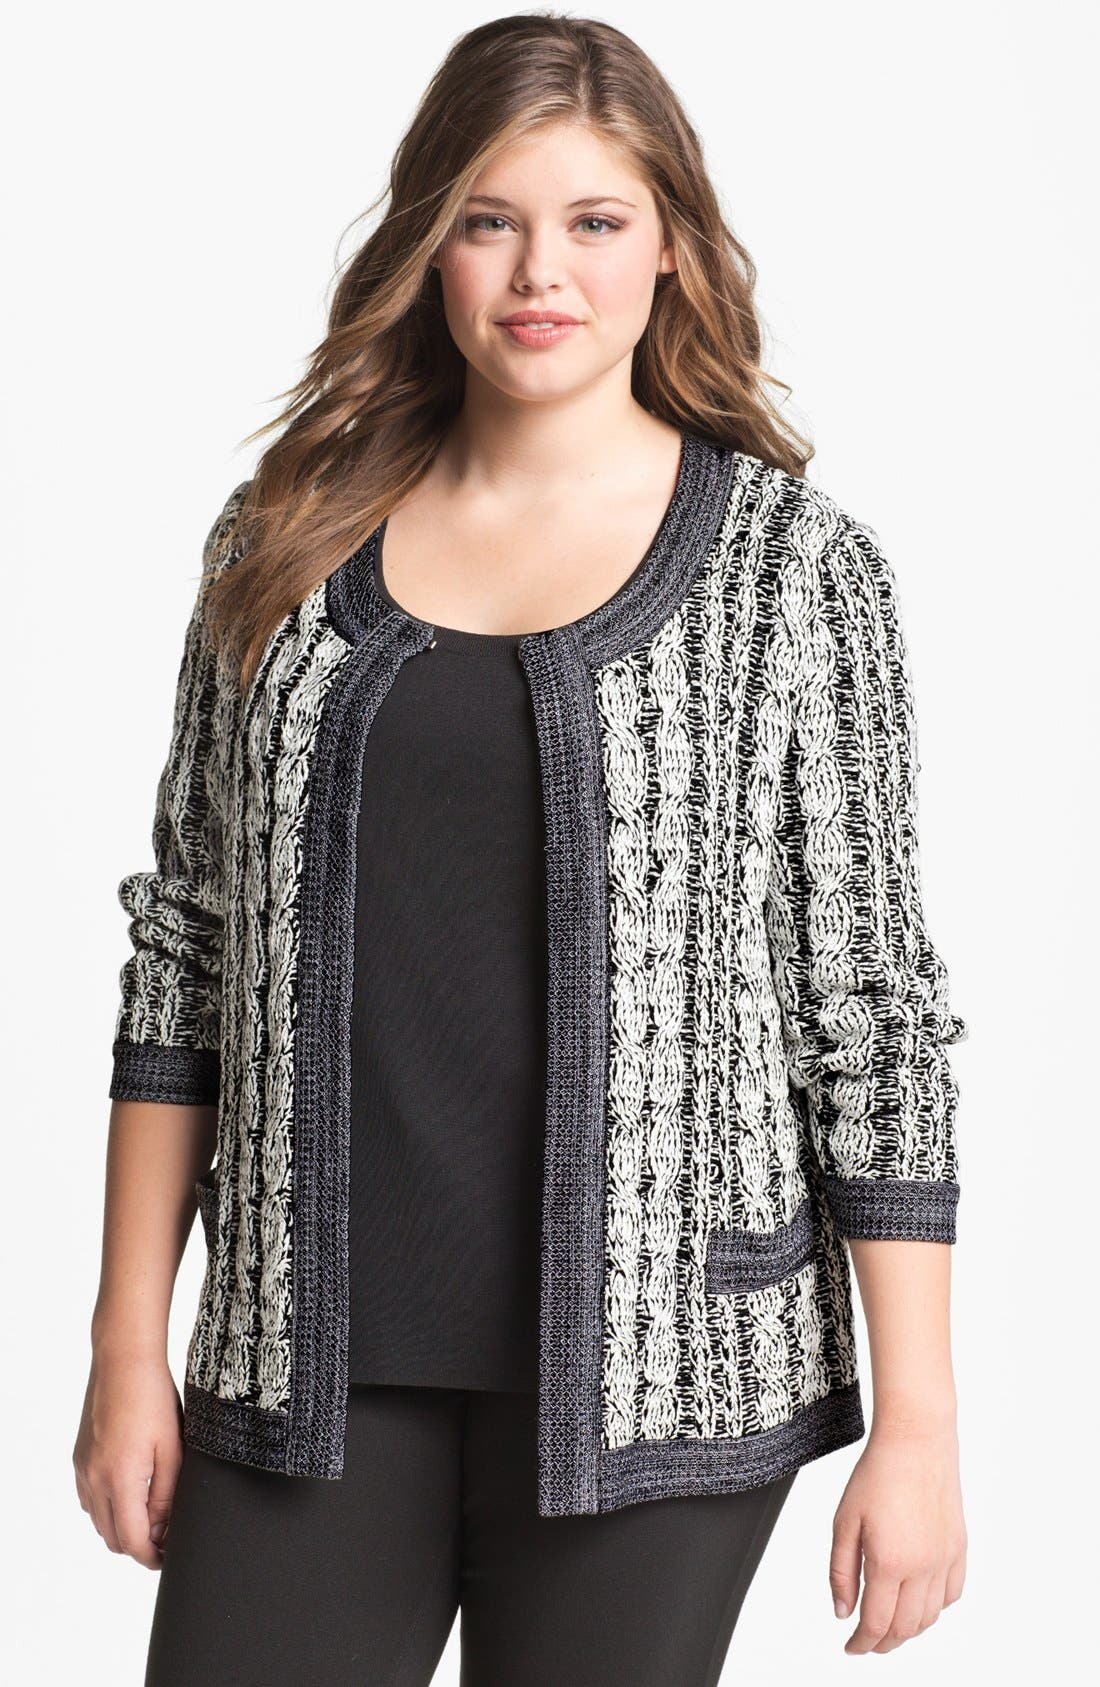 Alternate Image 1 Selected - Exclusively Misook 'Rena' Sweater Jacket (Plus Size)